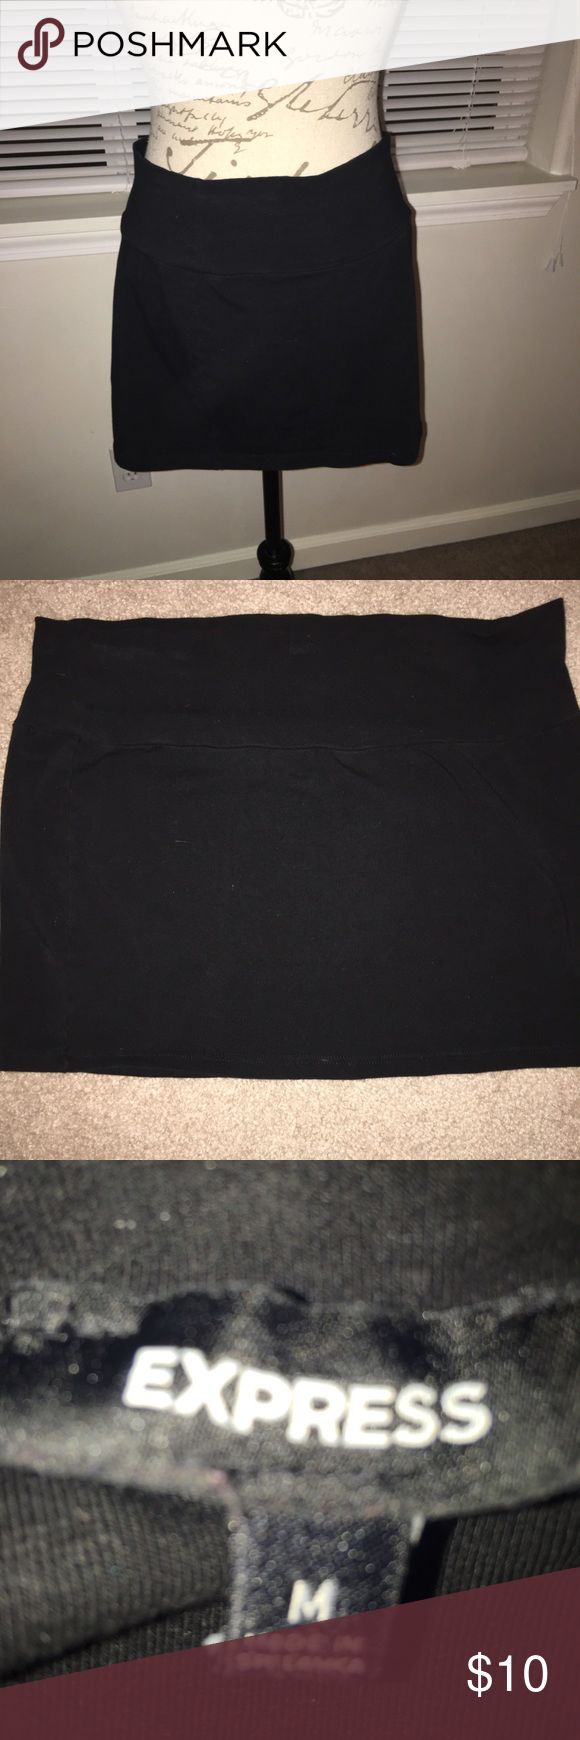 Express Micro Mini Skirt Size Medium Black micro mini skirt from Express in great used condition. This skirt is perfect to wear over leggings. Hot look with knee high or over knee boots. Express Skirts Mini